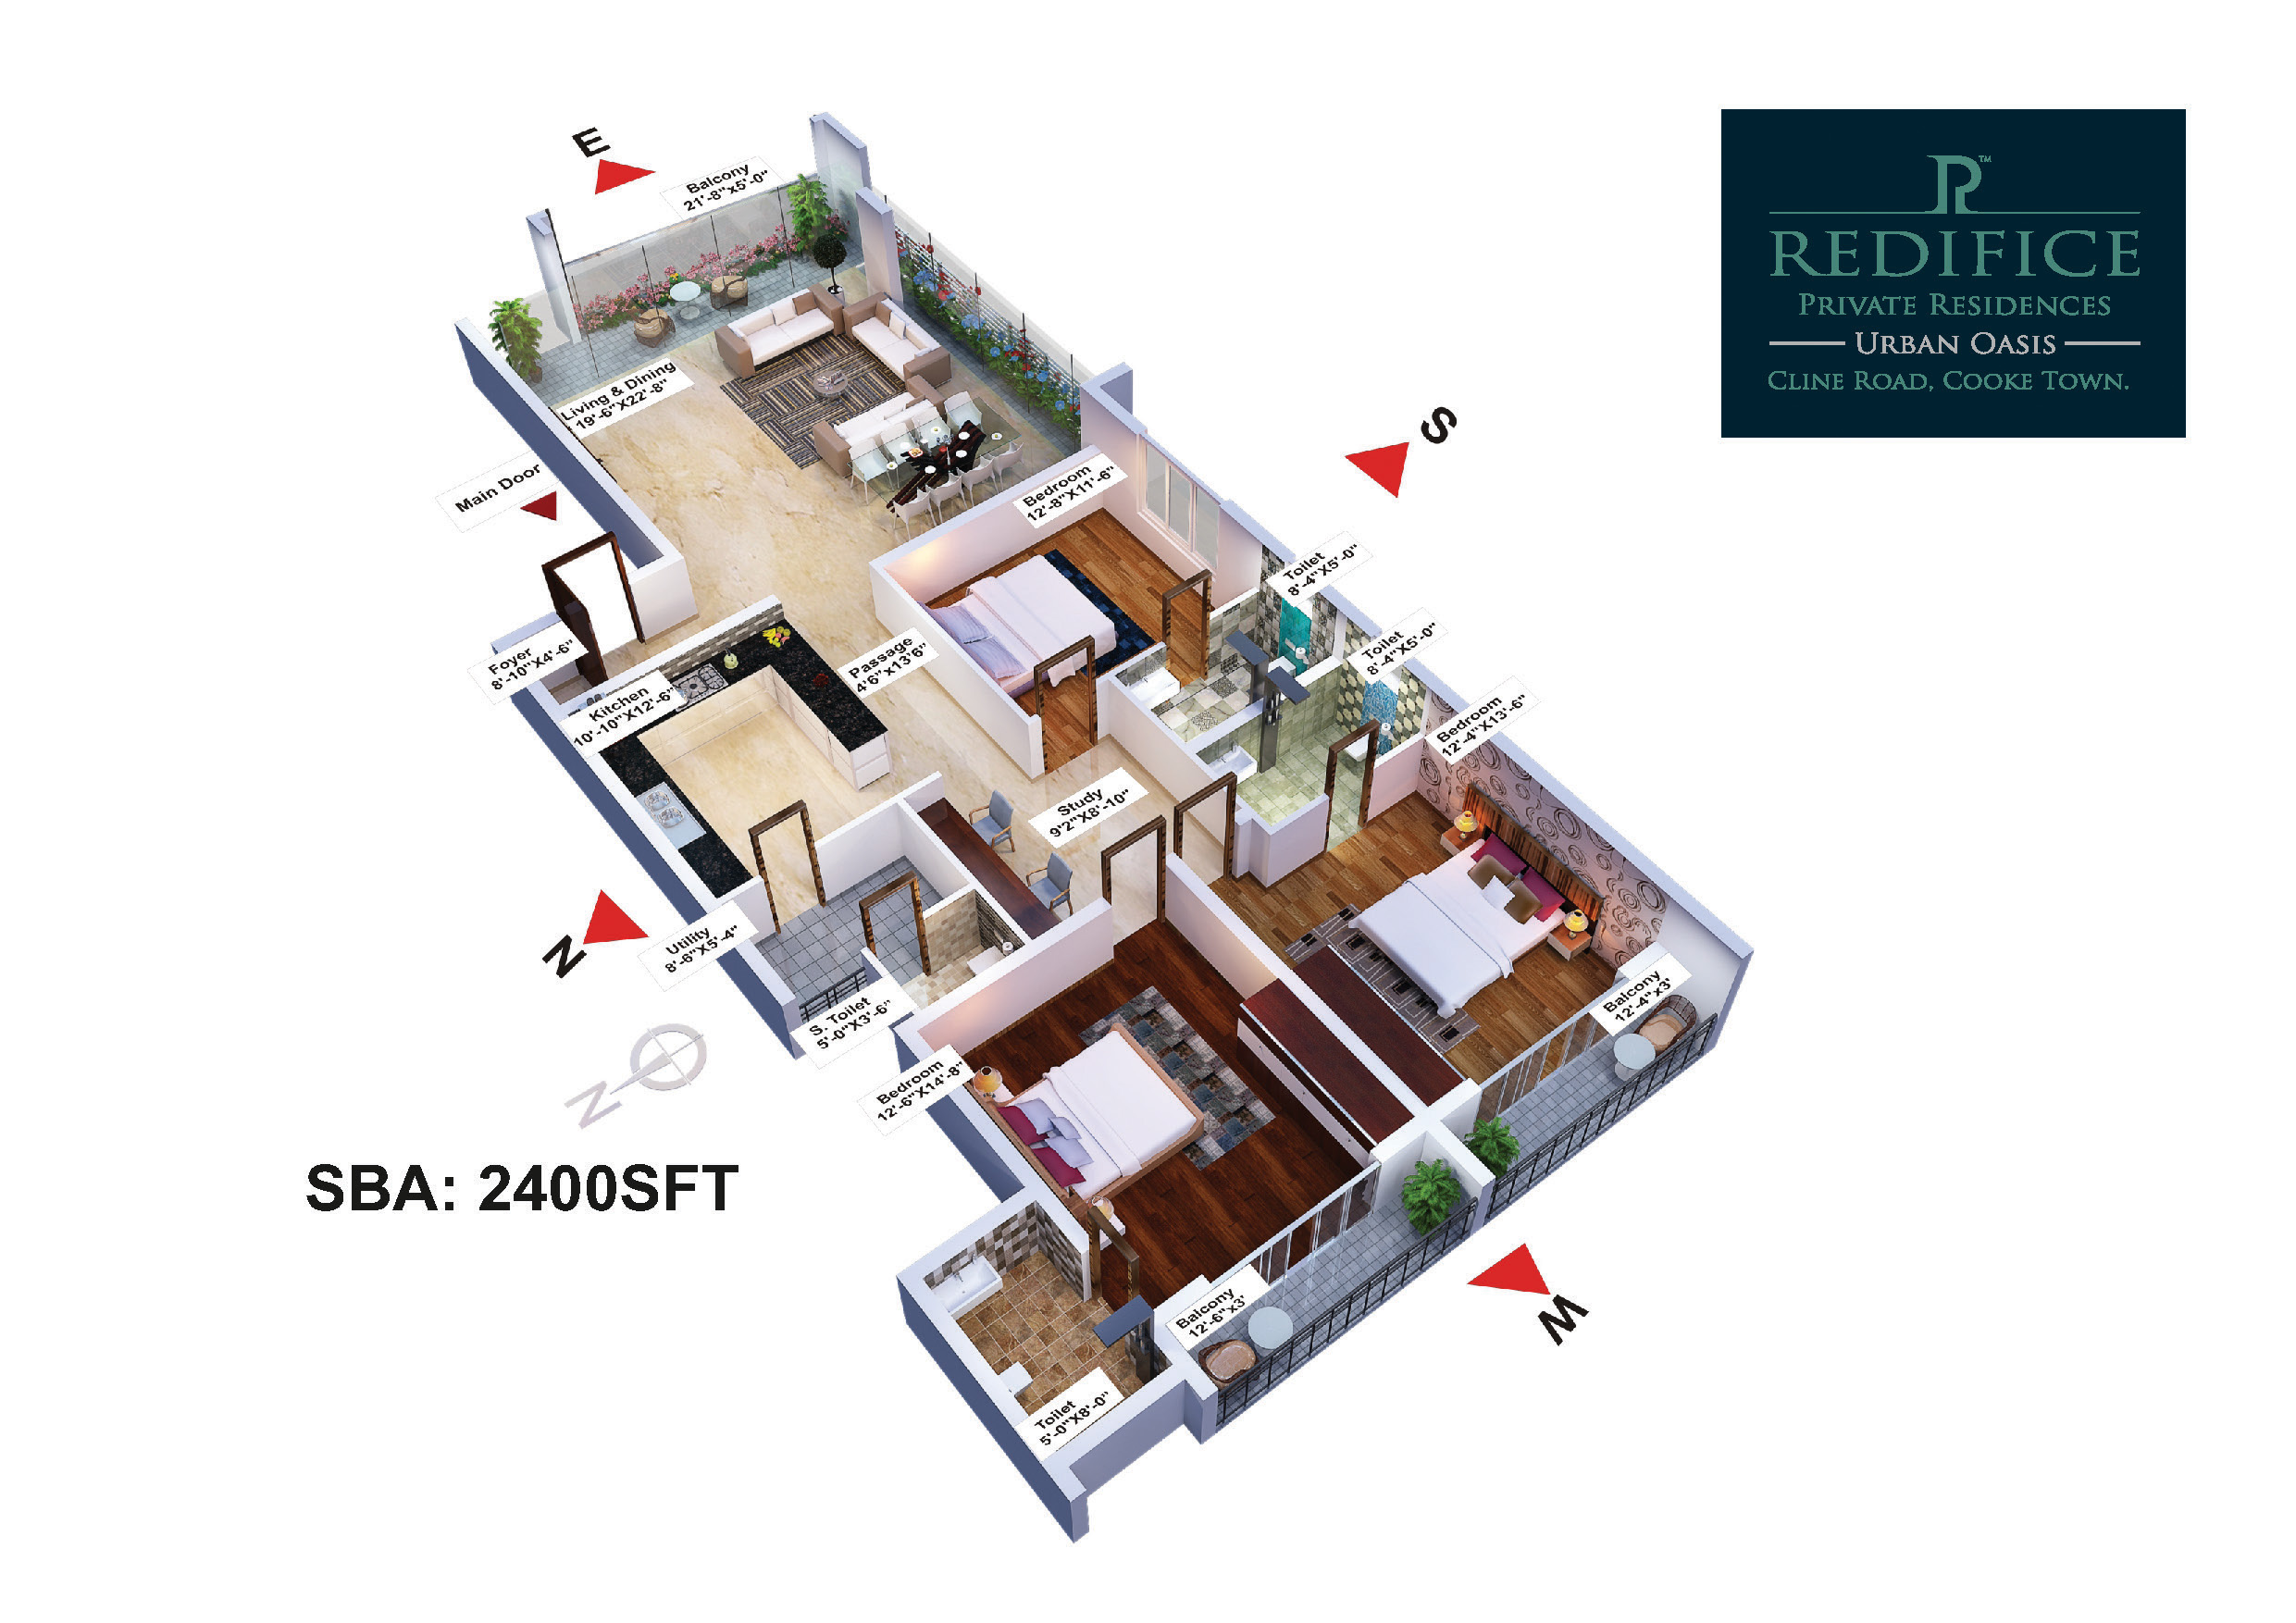 luxury real estate projects in hyderabad - LuxuryBloom